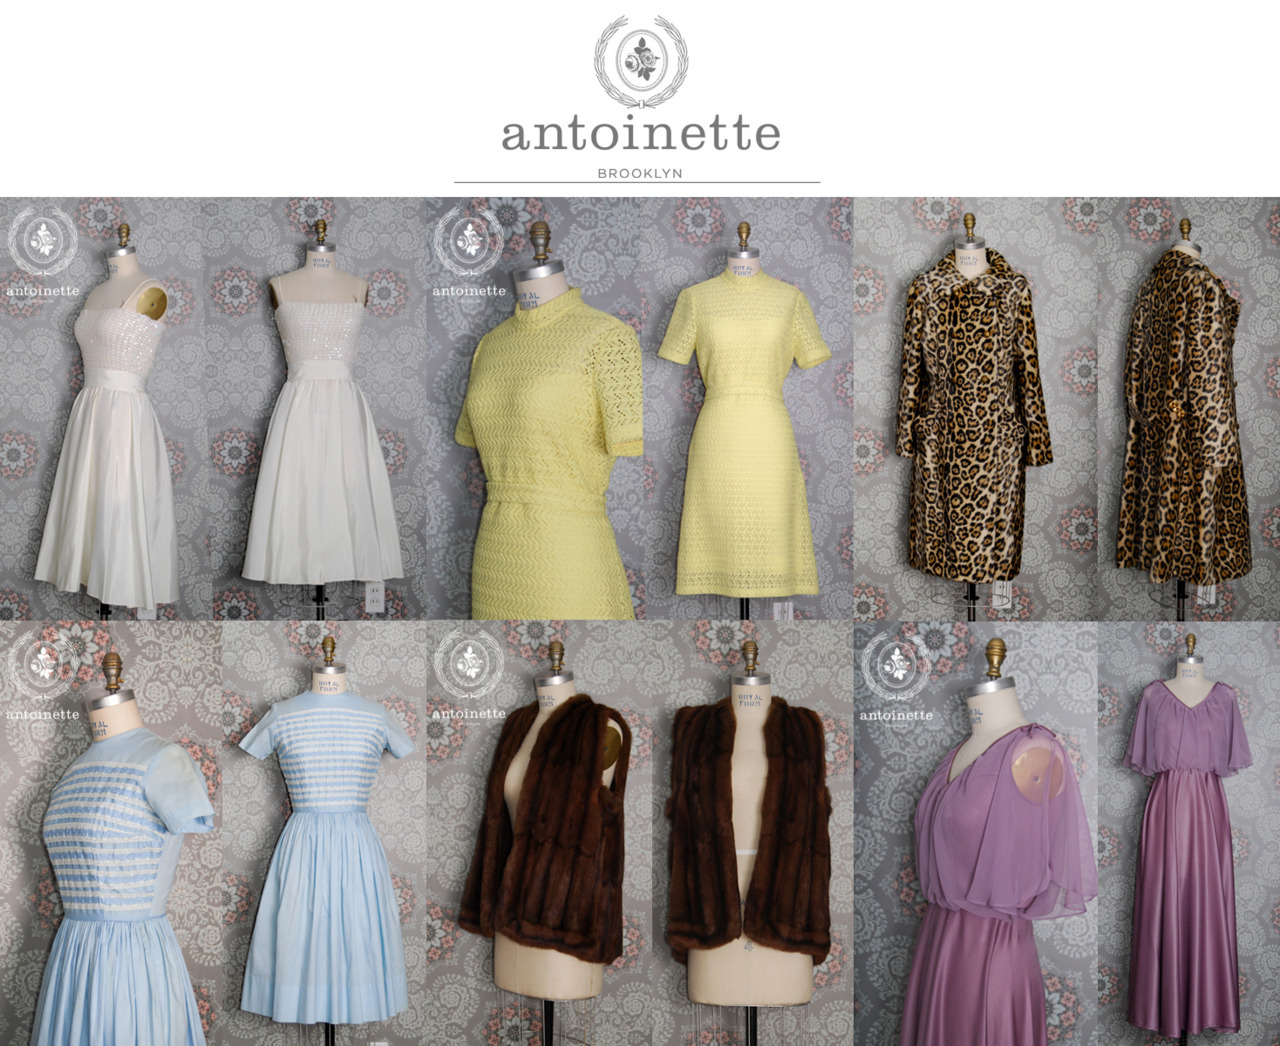 For those who can't get to Brooklyn NY,  Antoinette  is now available on  Market Publique !        http://blog.marketpublique.com/content/introducing-antoinette